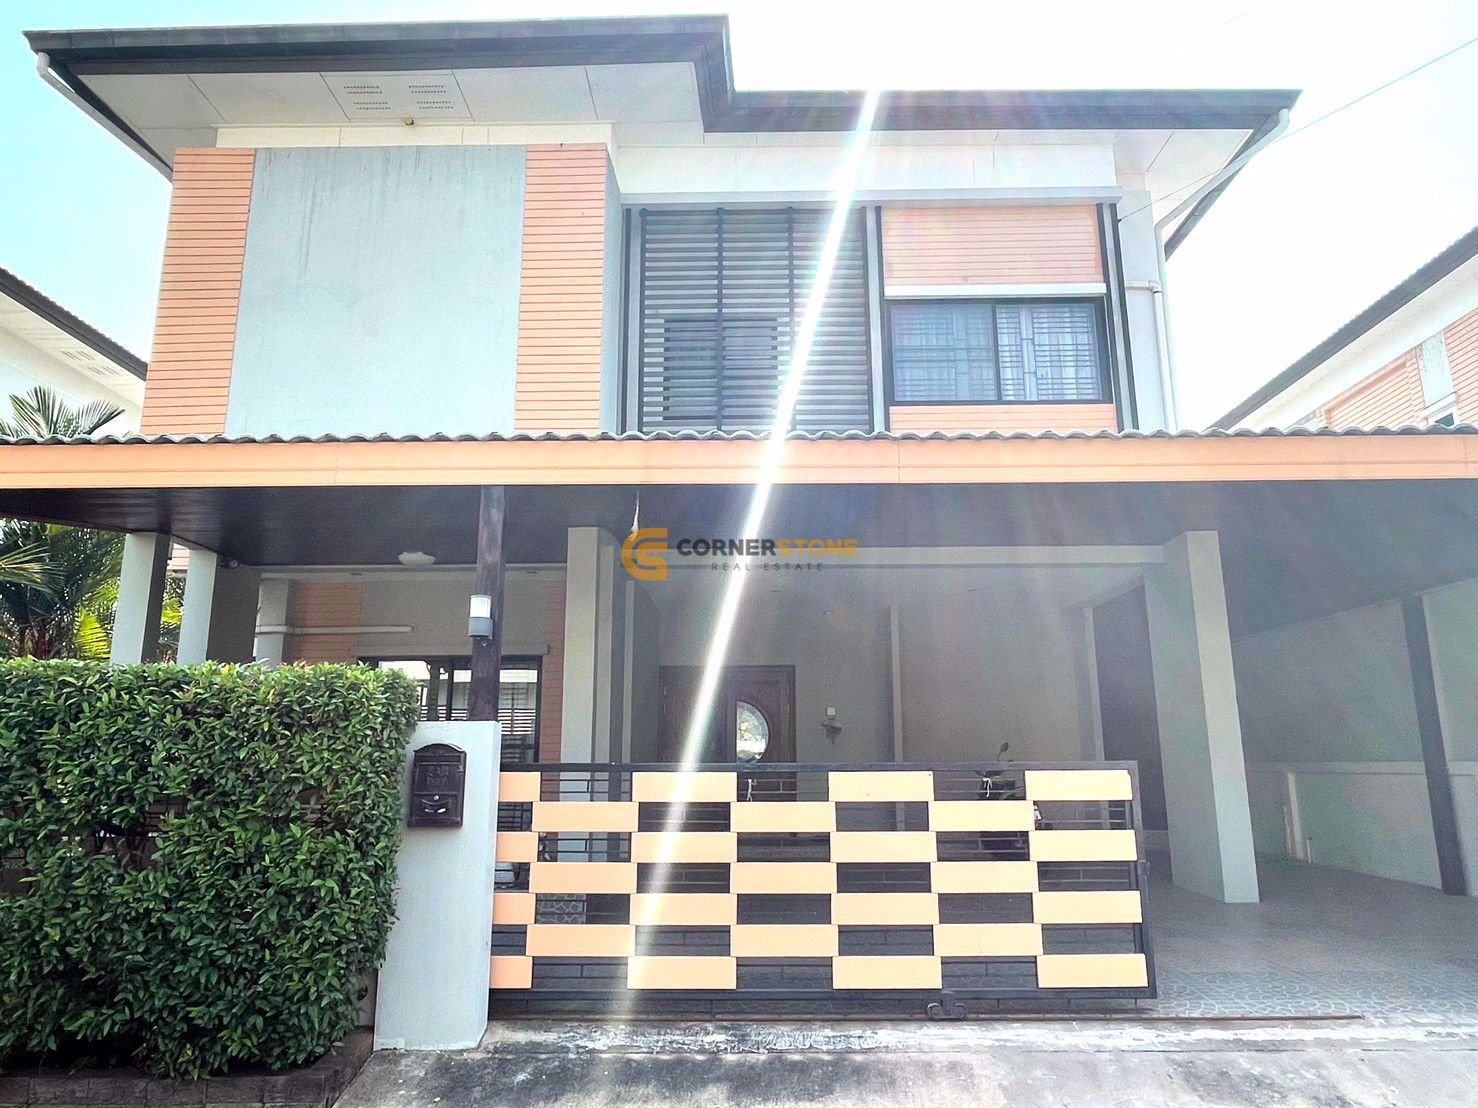 3 Bedrooms House  for rent and for sale in Patta Village in East Pattaya H002054